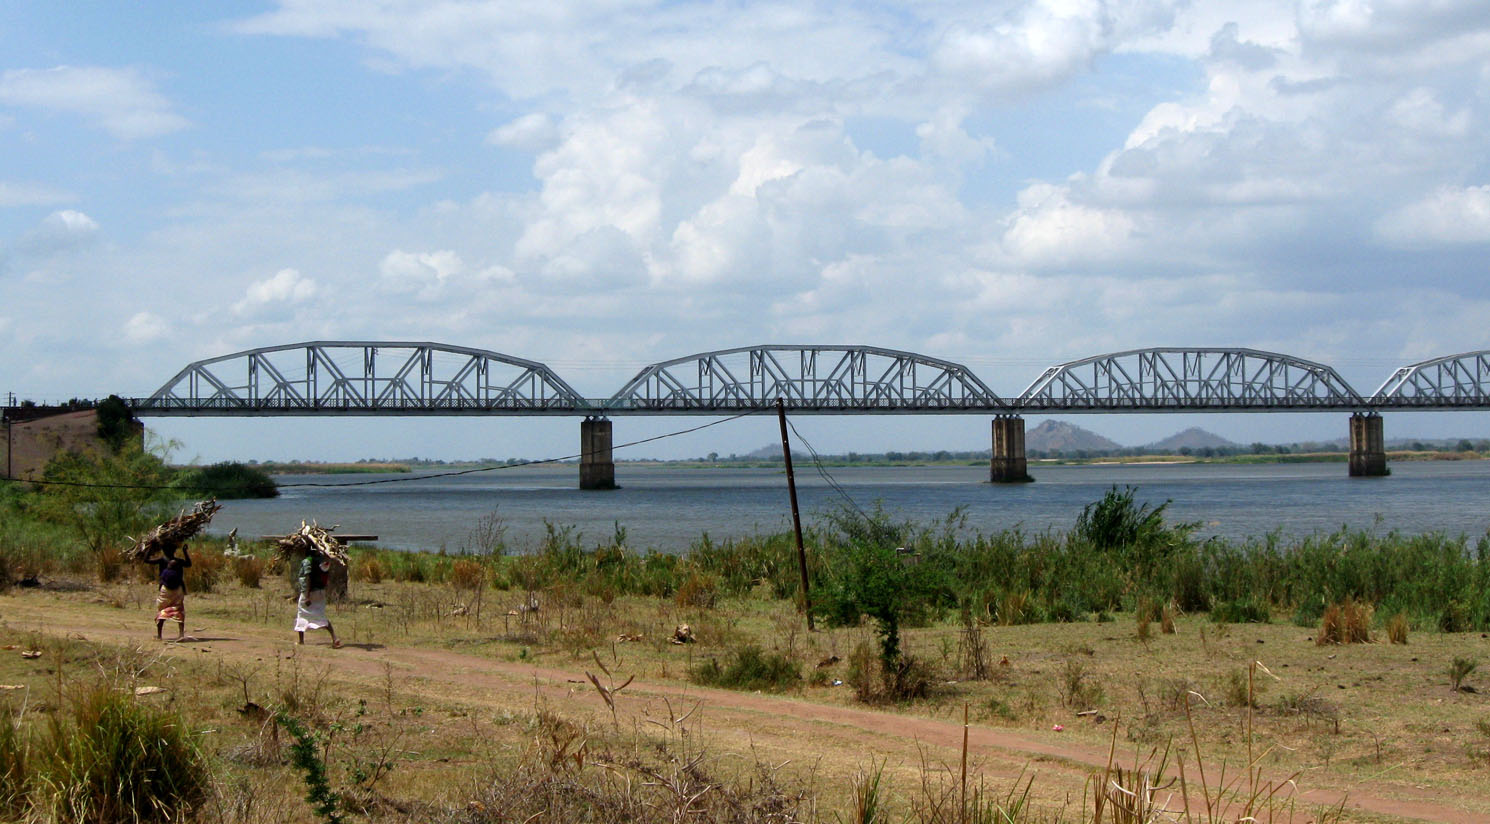 09-064_4-railway_bridge_over_the_zambezi_river__mozambique_1490x824.jpg